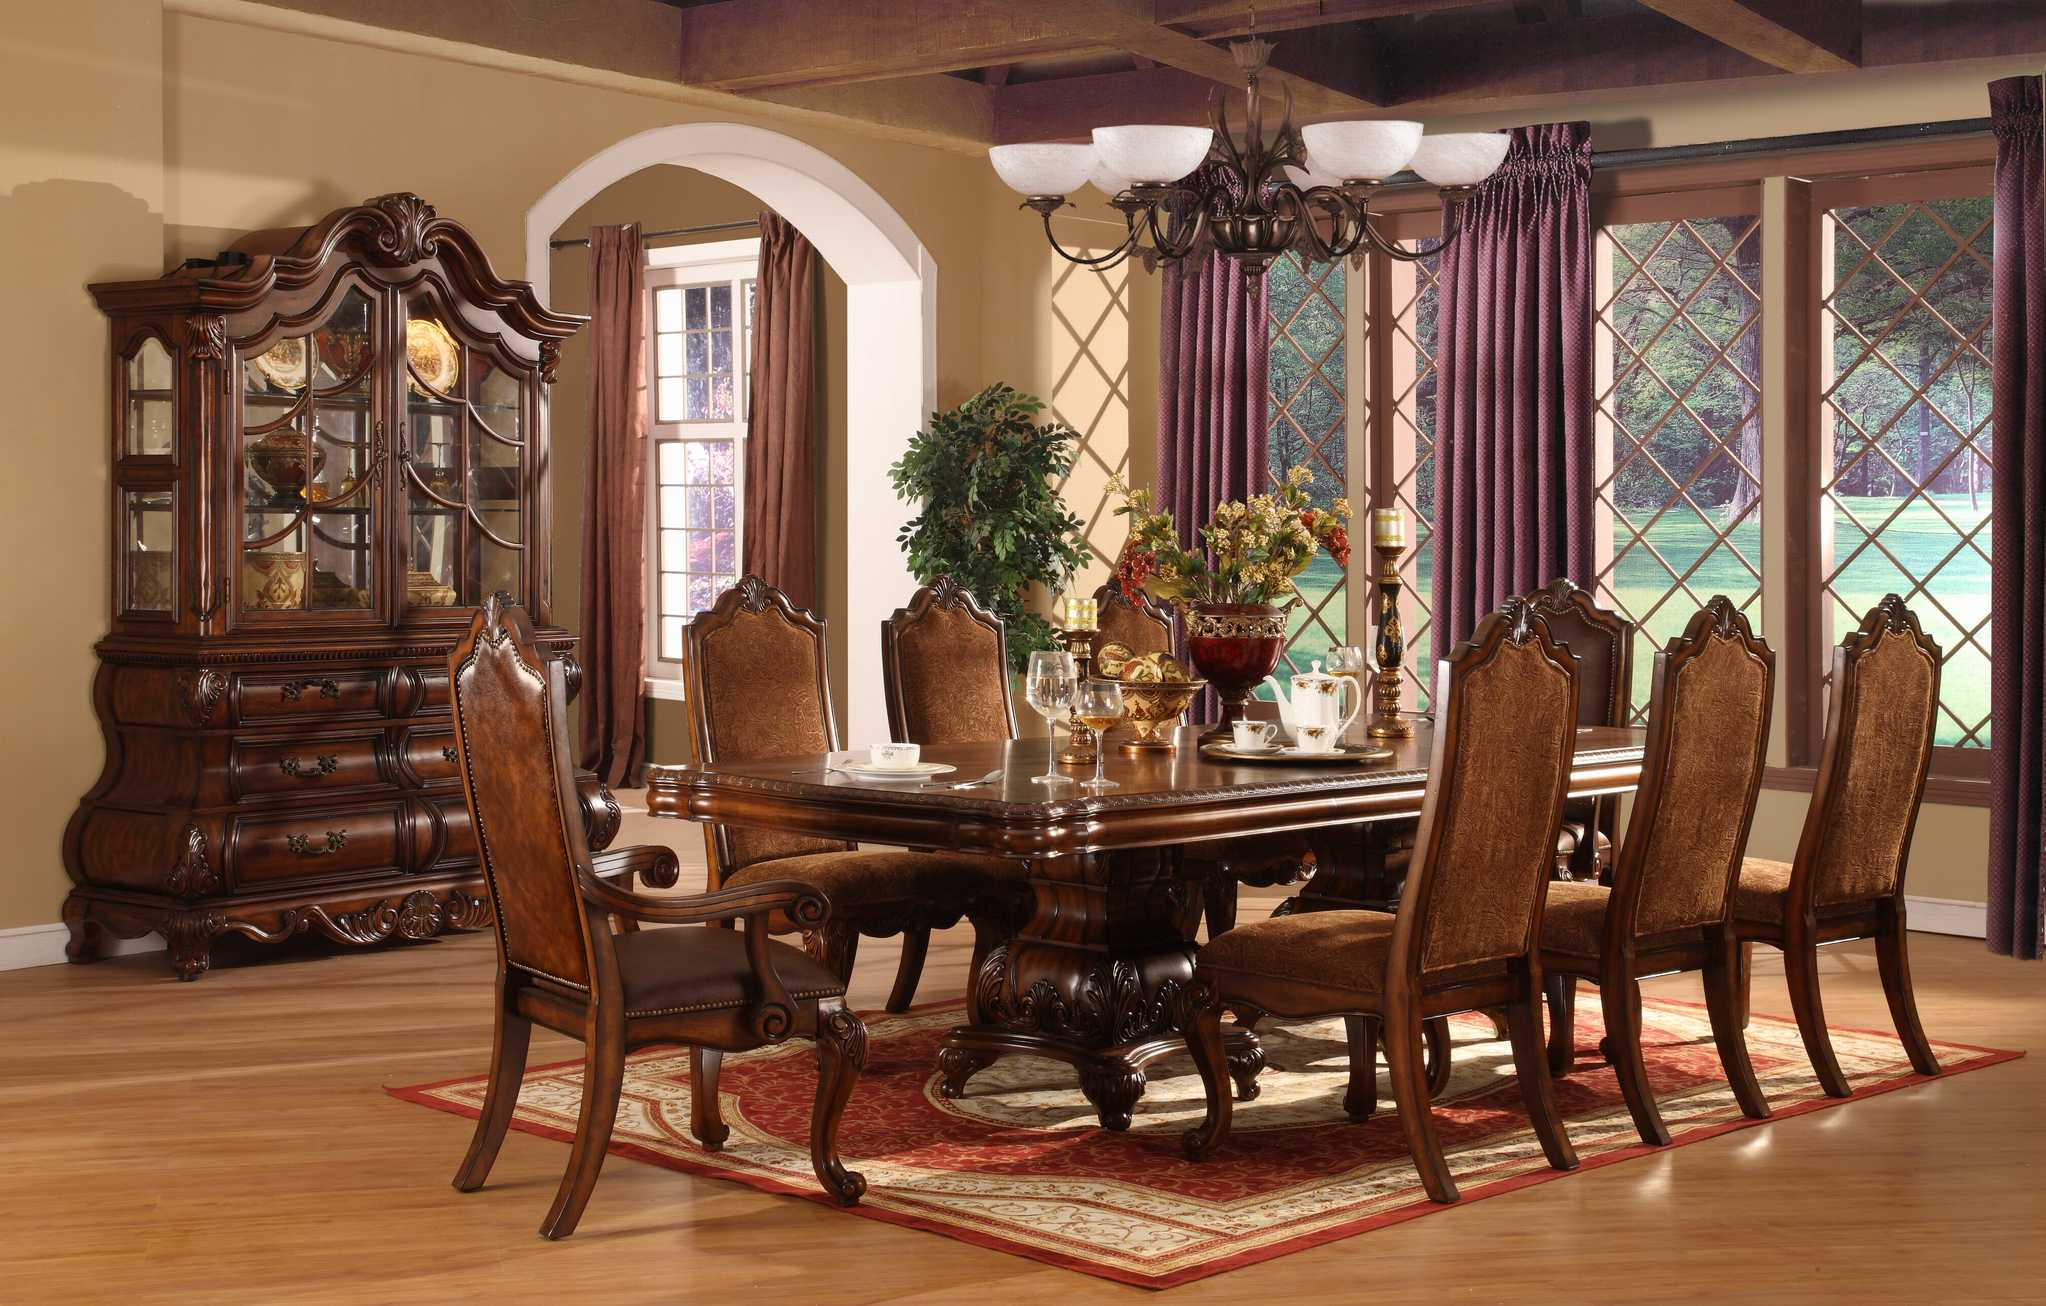 Perfect formal dining room sets for 8 homesfeed for Formal dining room decor